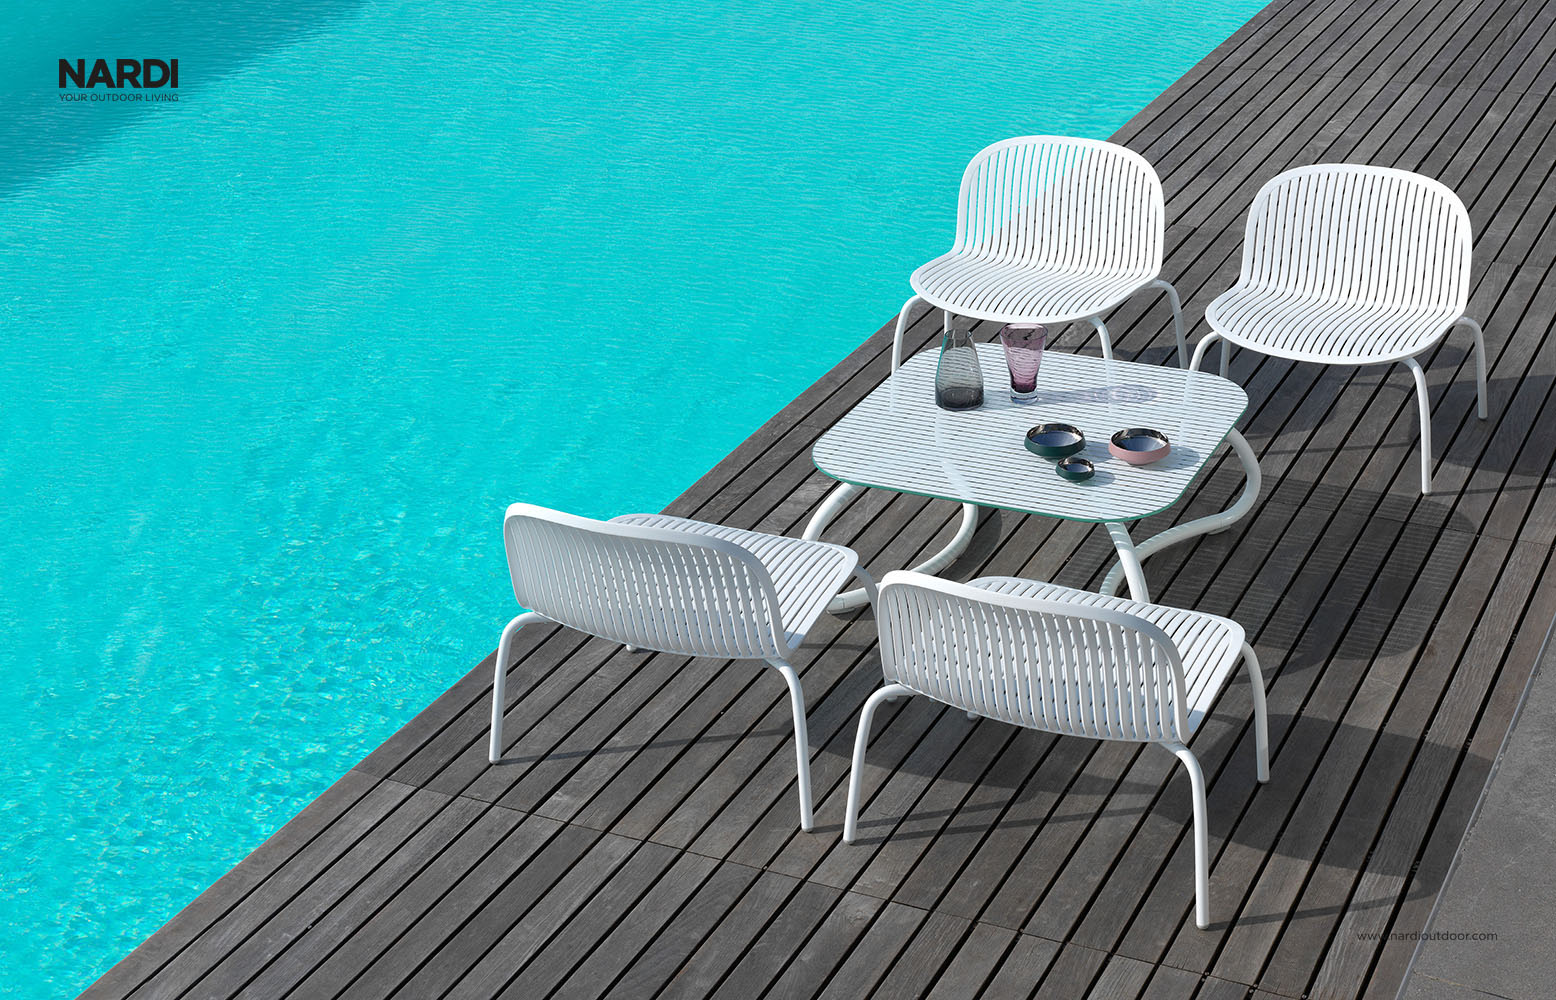 NINFEA RELAX tool, hind 154€ LOTO RELAX laud, hind 266€